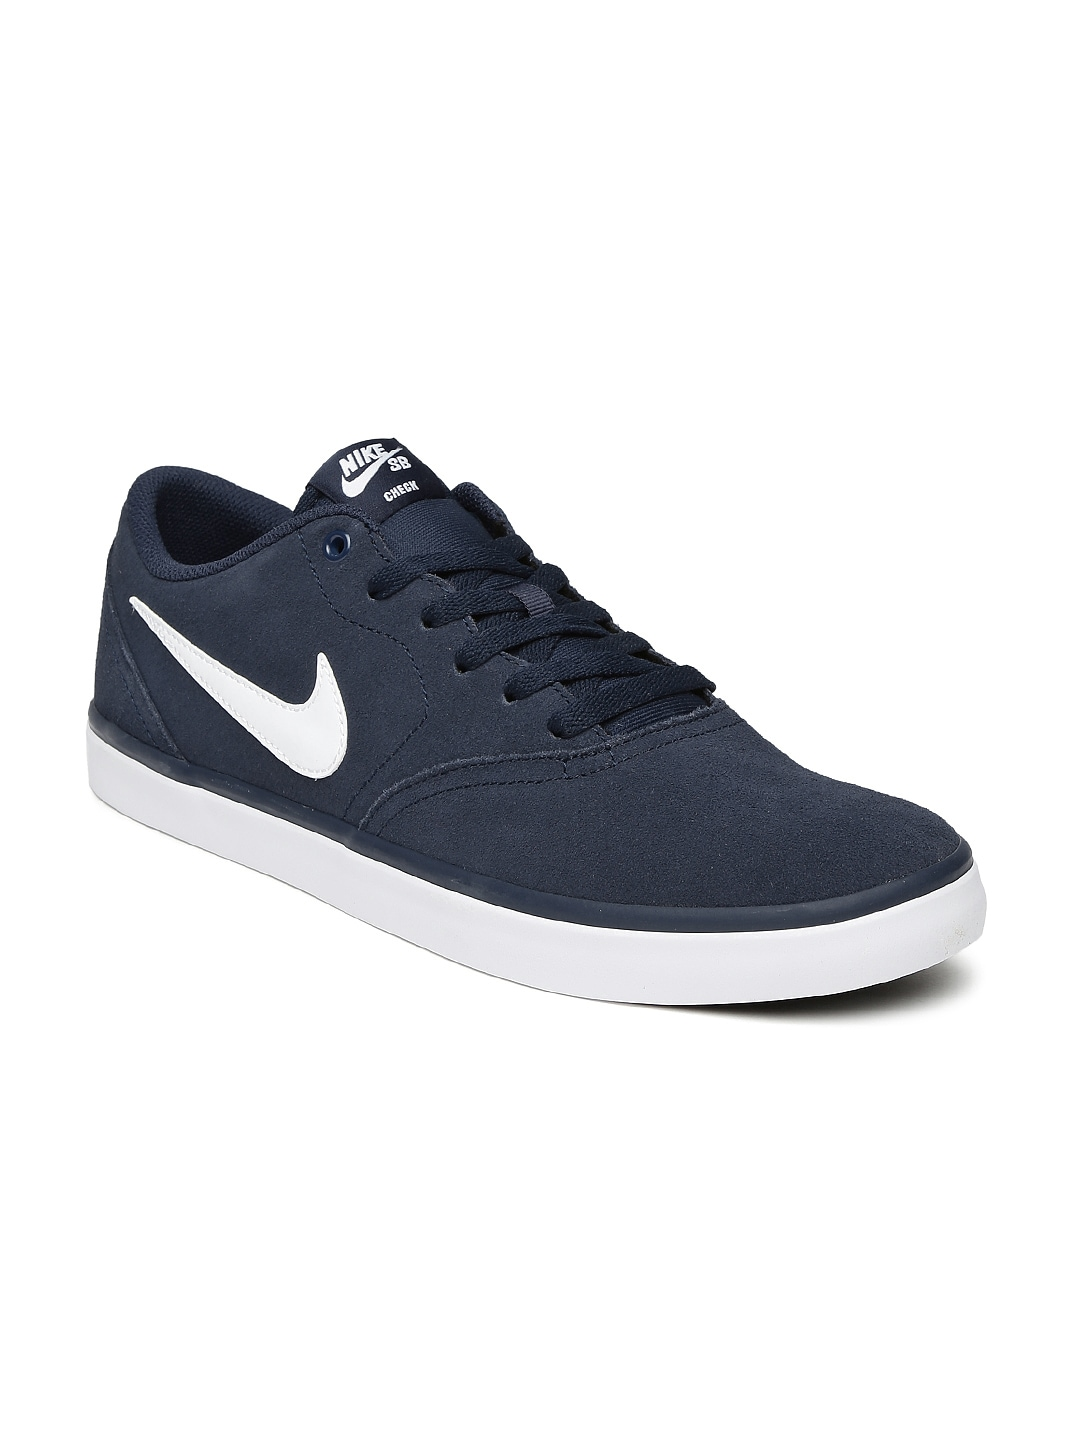 official photos 39f12 ba5b3 Nike Suede Shoes - Buy Nike Suede Shoes online in India